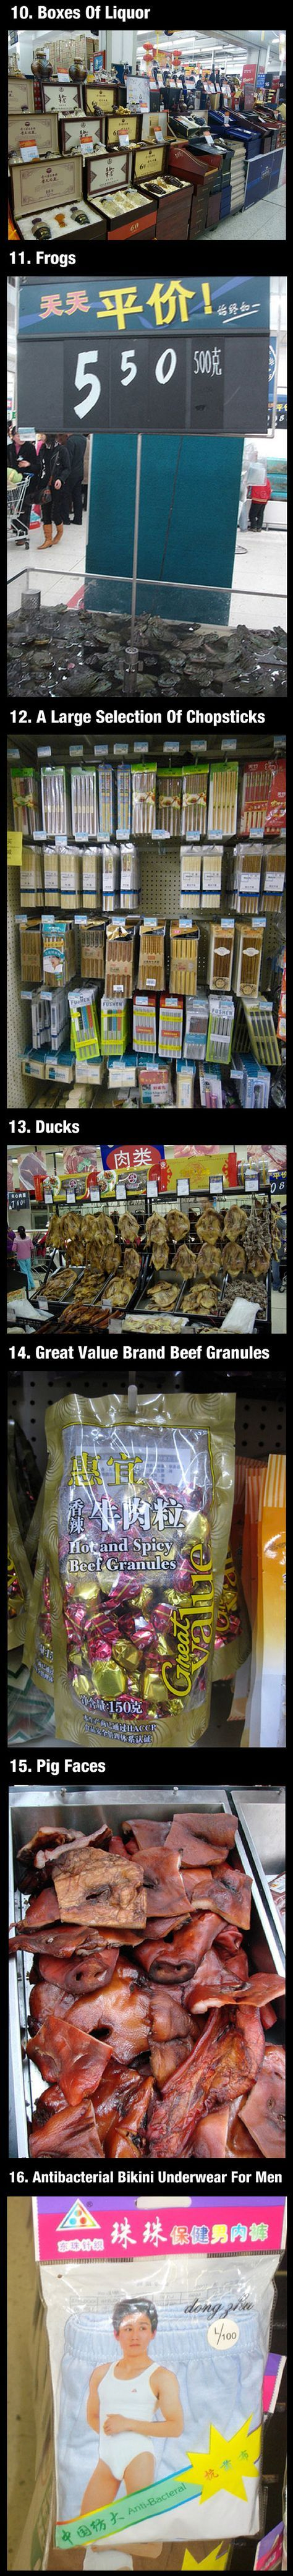 Items Only Sold At Walmart In China - Part 3. Funny Chinese sightings